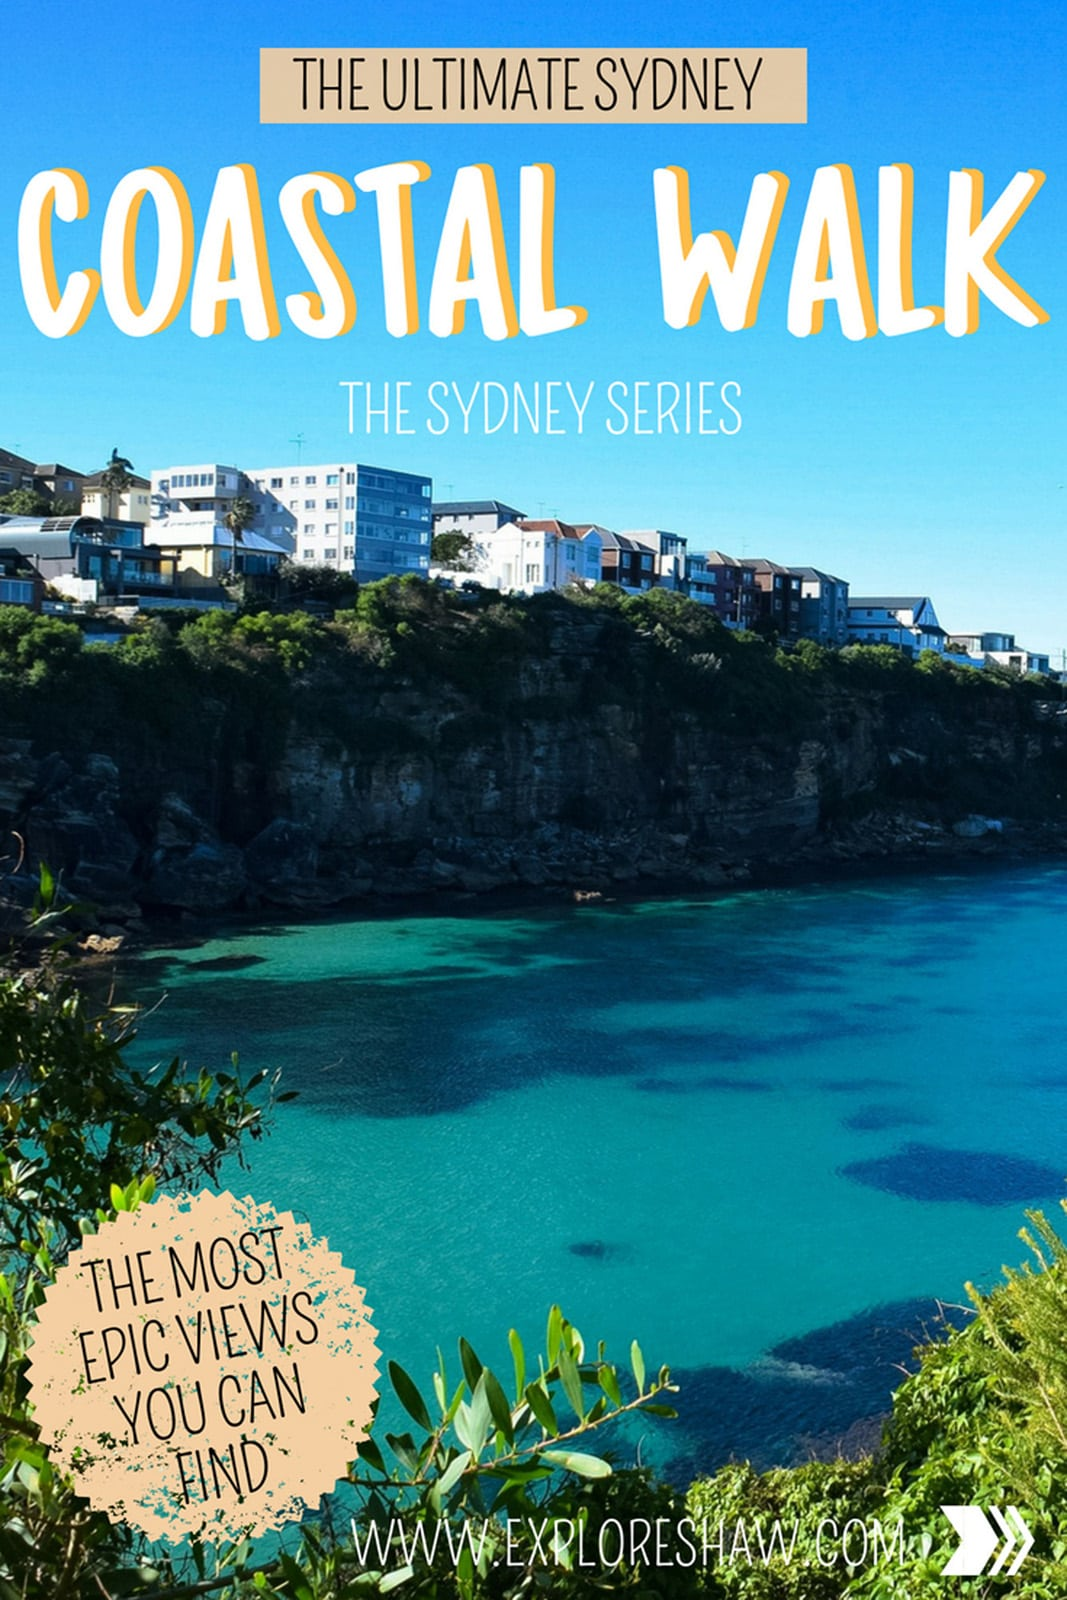 Get some fresh air and exercise while taking the ultimate coastal walk in Sydney from Bondi Beach all the way to Coogee - offering some of the best coastal views in Sydney. #Australia #NewSouthWales #Sydney